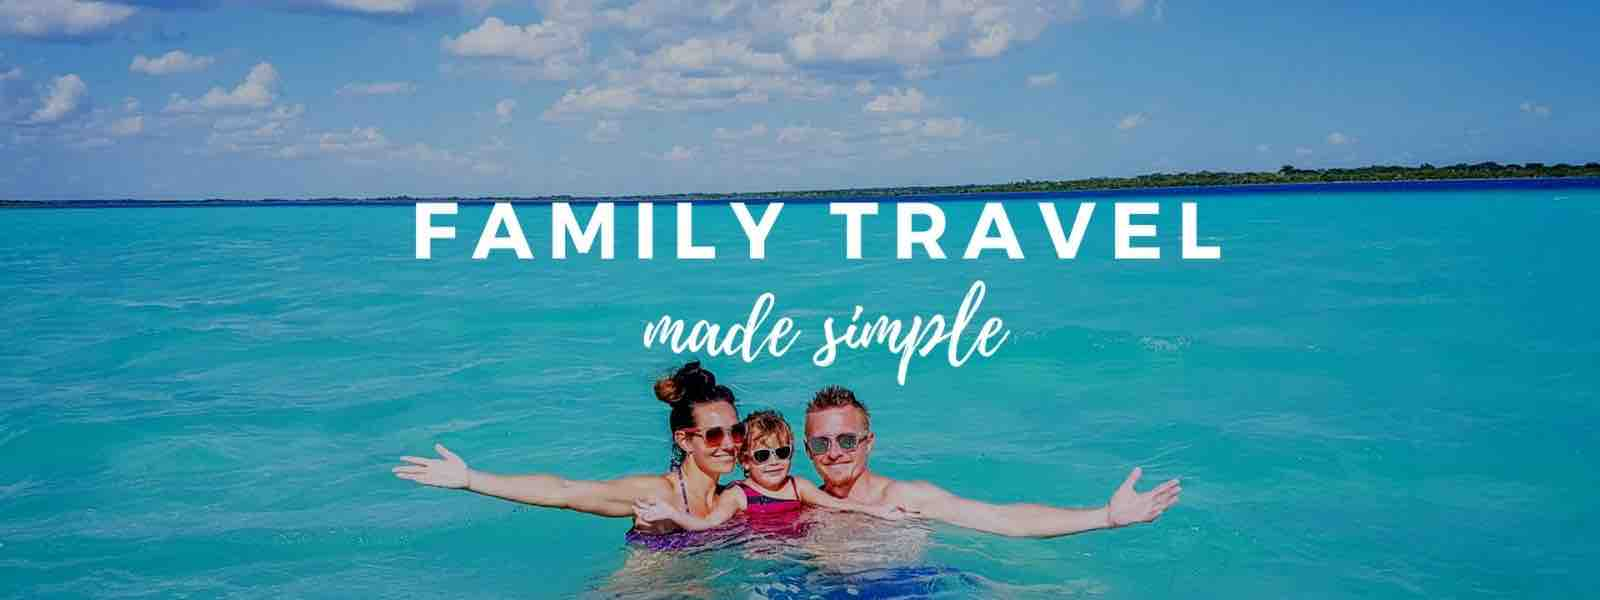 easy planet travel family travel made simple